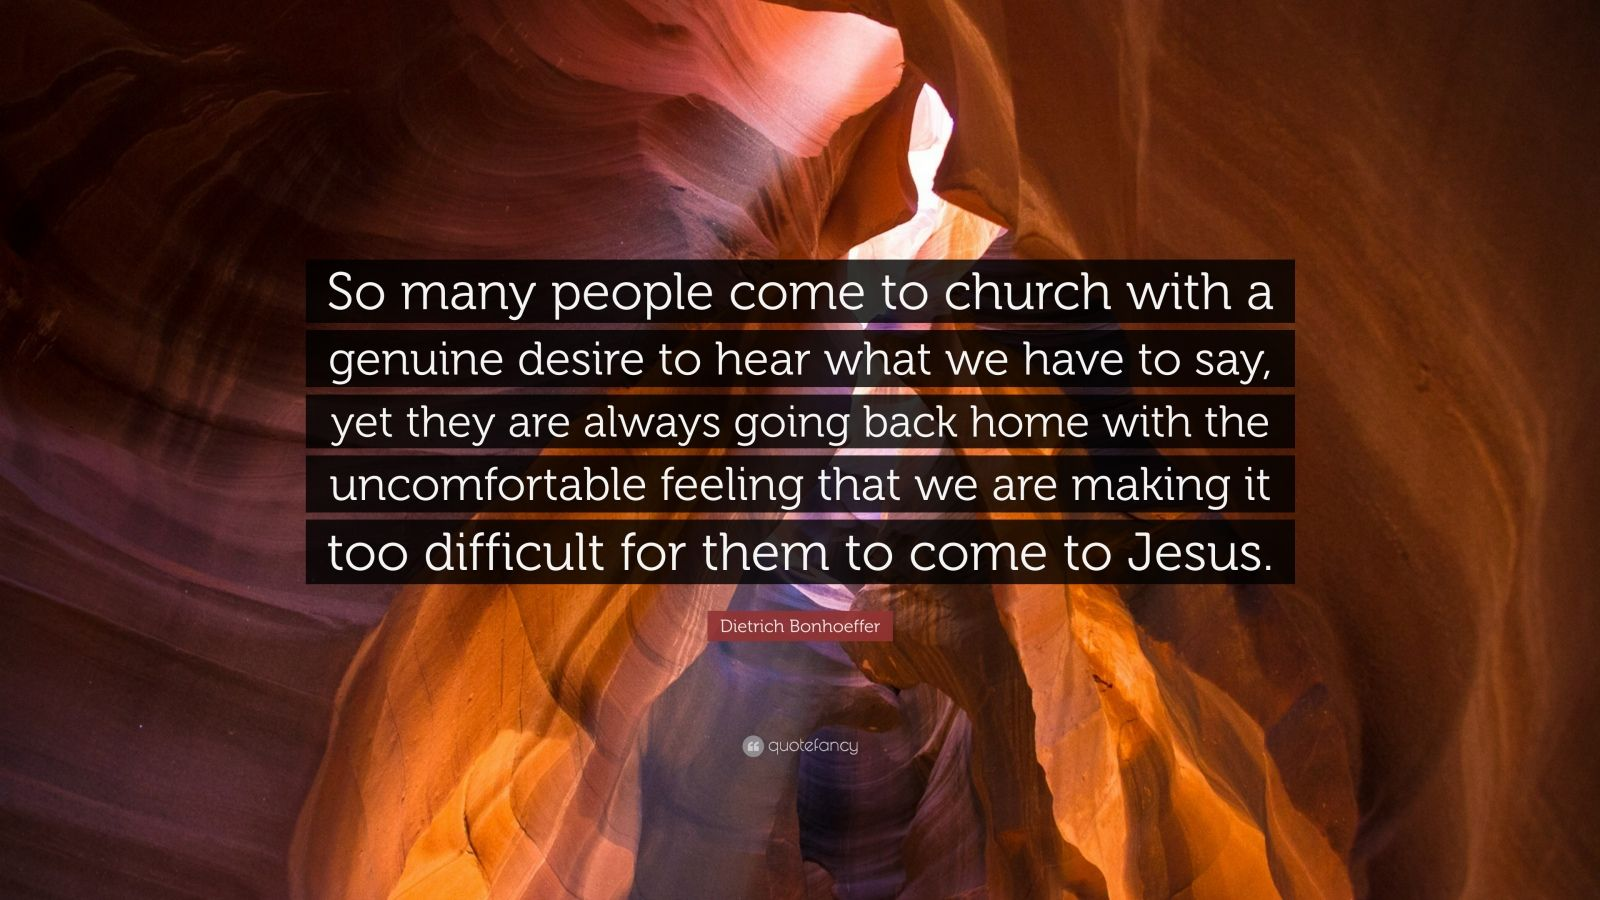 """Dietrich Bonhoeffer Quote: """"So many people come to church with a genuine desire to hear what we have to say, yet they are always going back home with the uncomfortable feeling that we are making it too difficult for them to come to Jesus."""""""